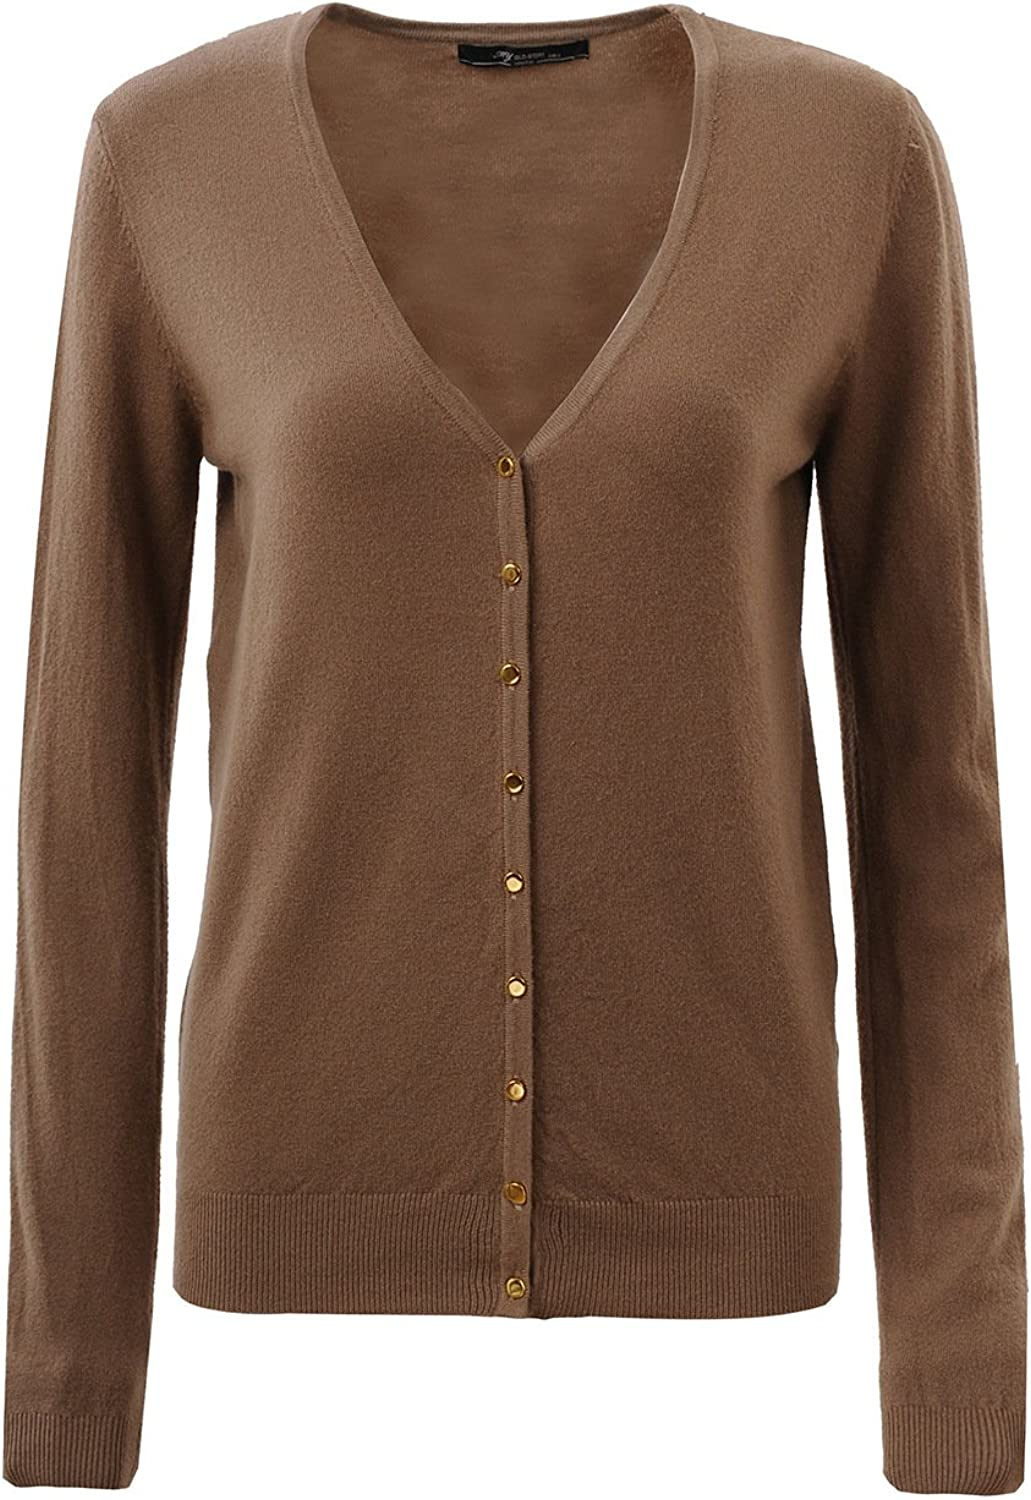 GLOSTORY Women's Casual Button Down Long Sleeve Cardigans Knit Sweaters 2604